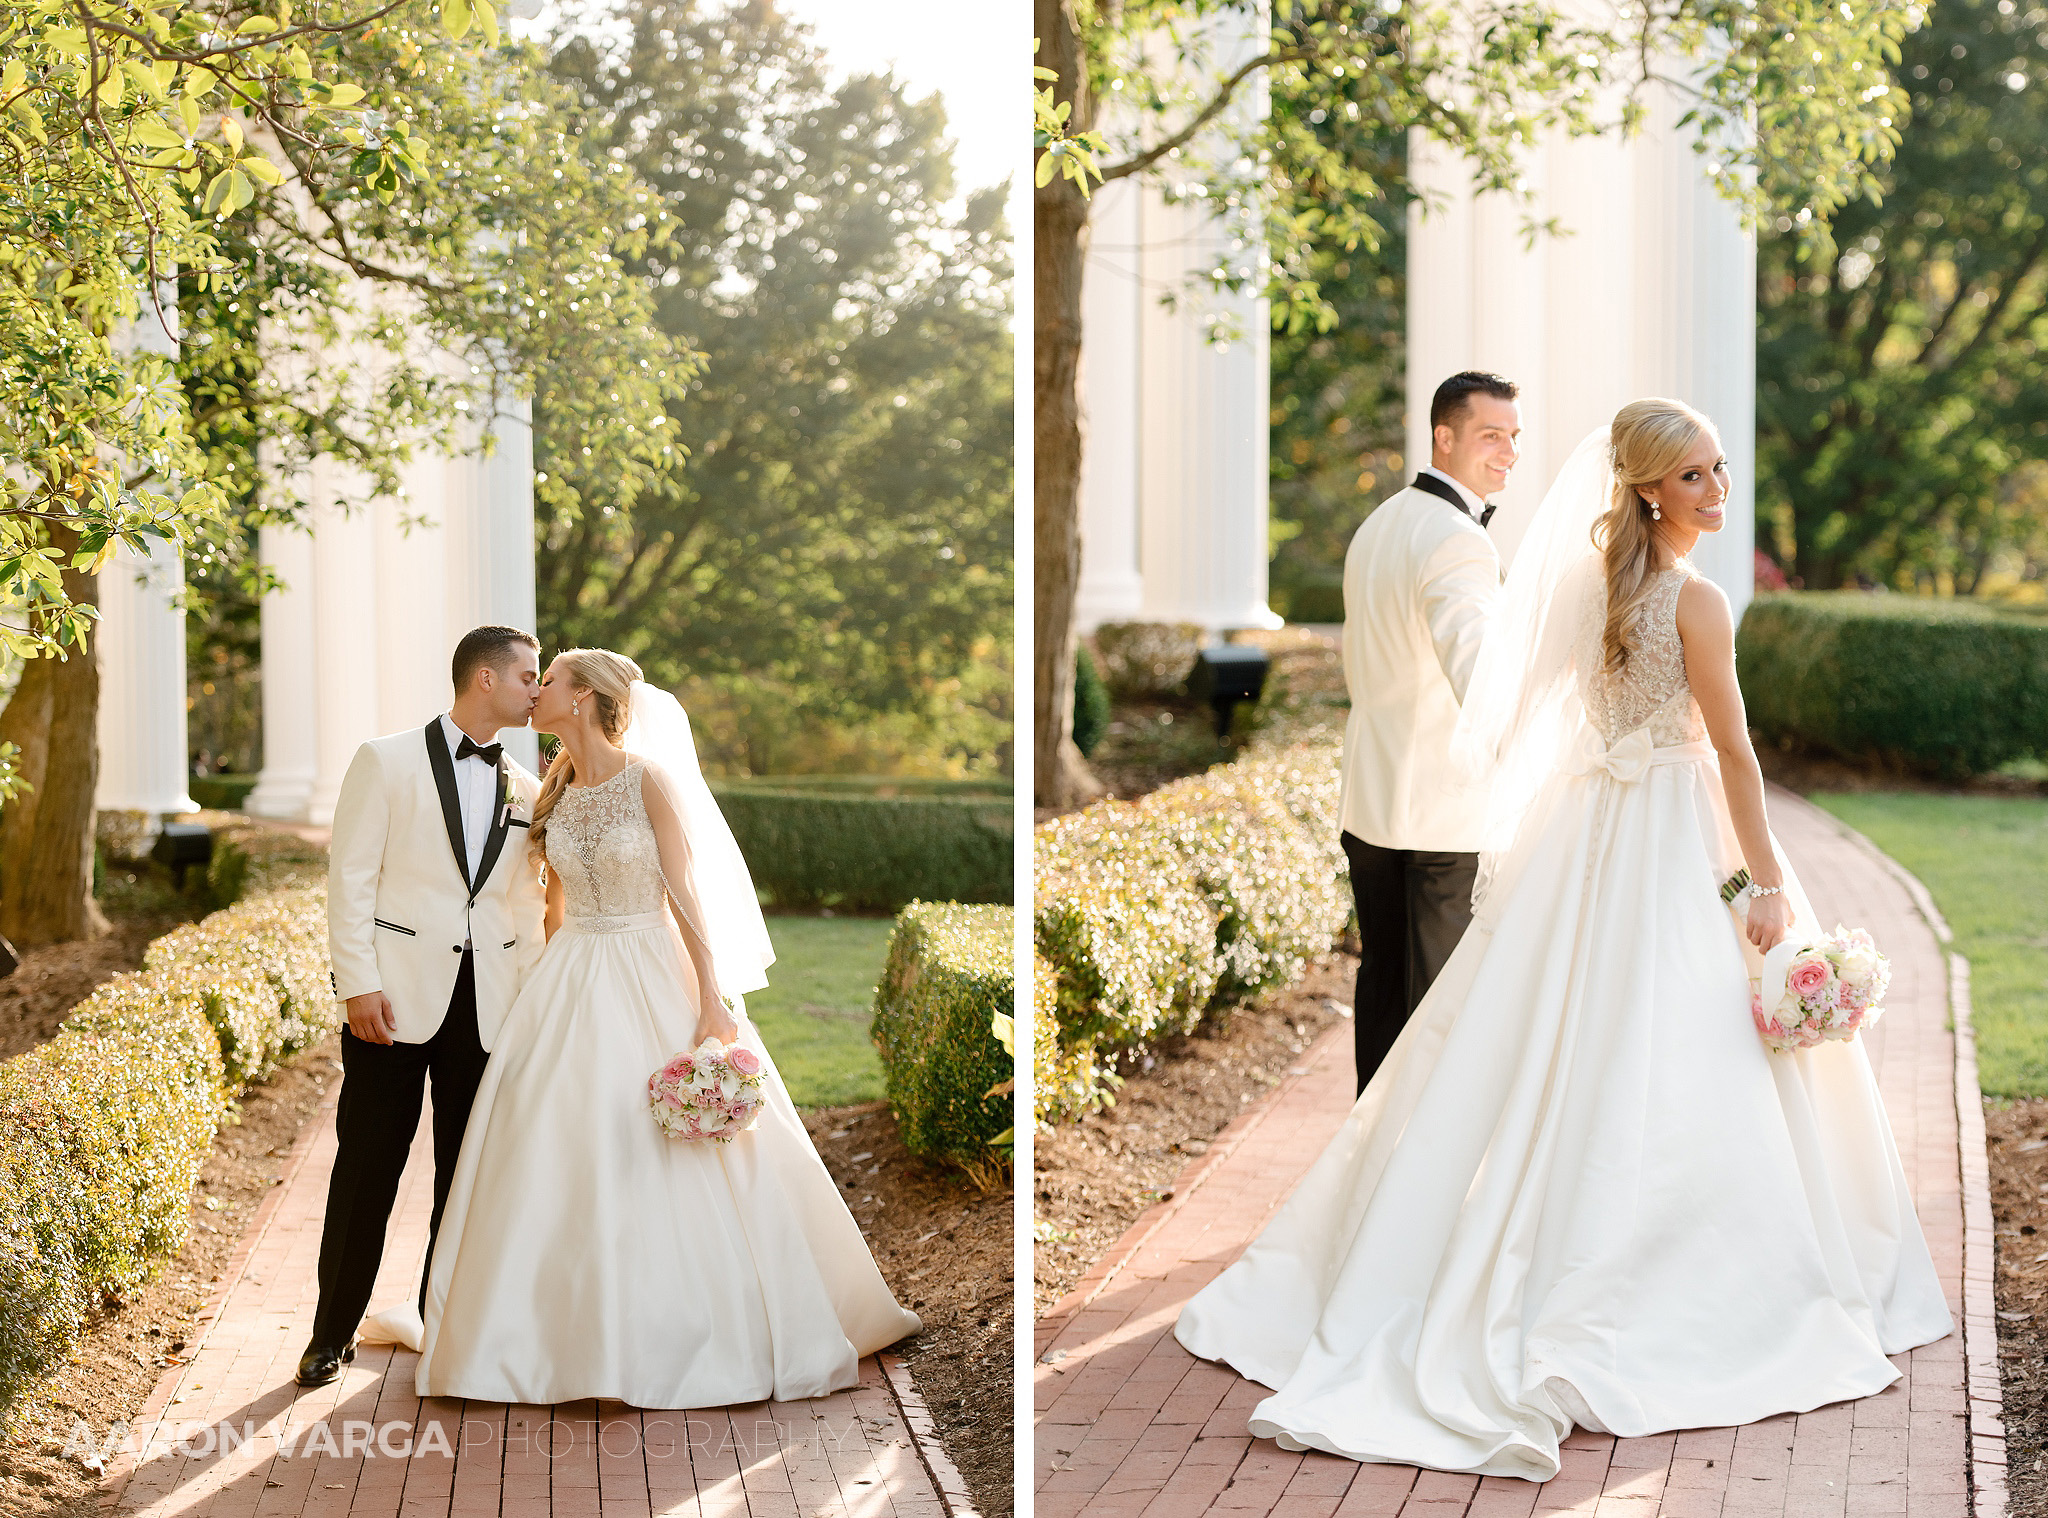 25 oglebay wedding photos - Gina + Chris | Oglebay Resort Wedding Photos